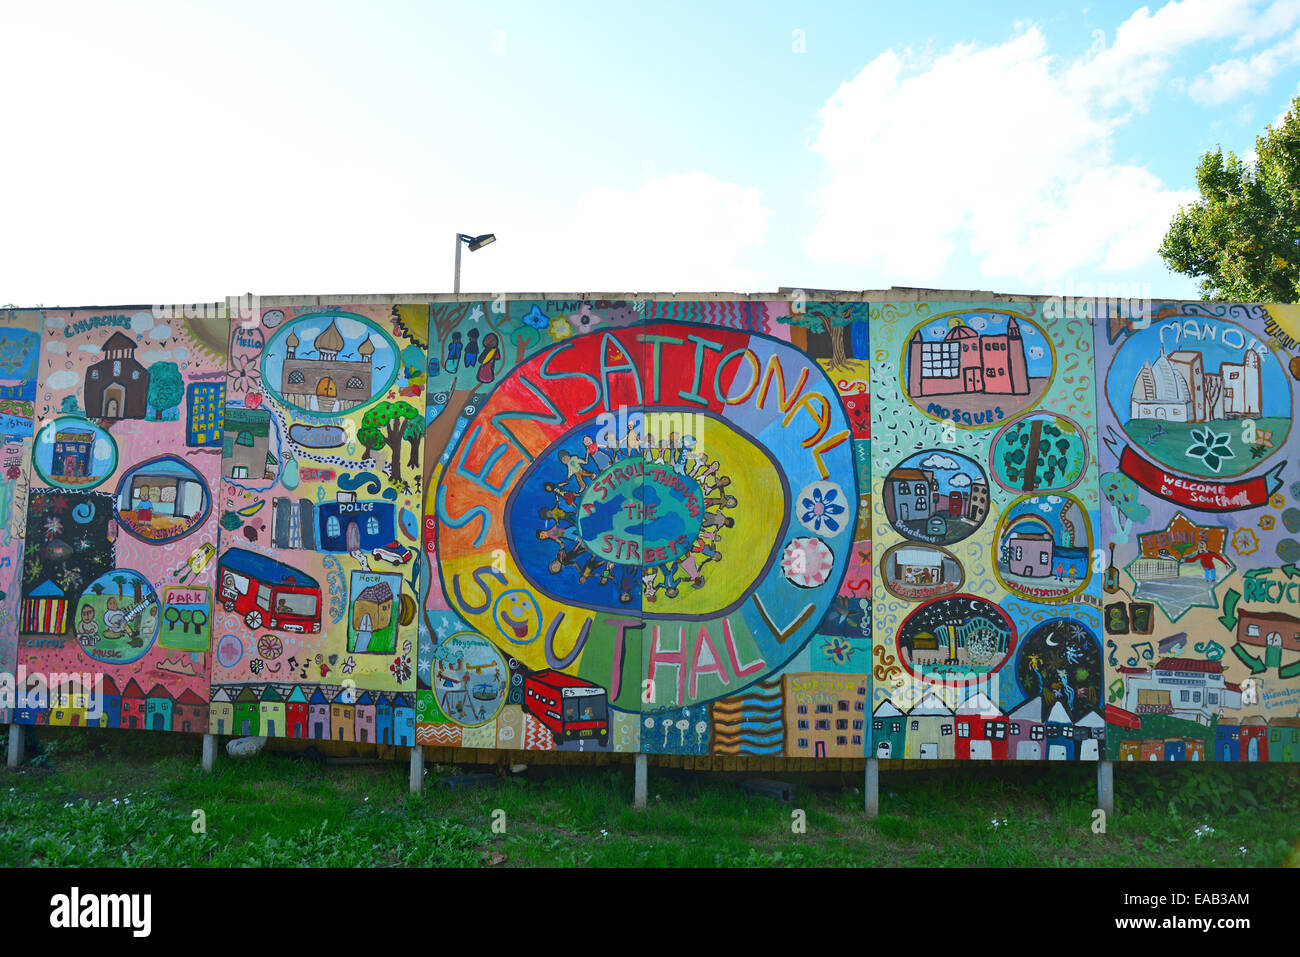 'Sensational Southall' children's mural, King St, Southall, London Borough of Ealing, Greater London, - Stock Image